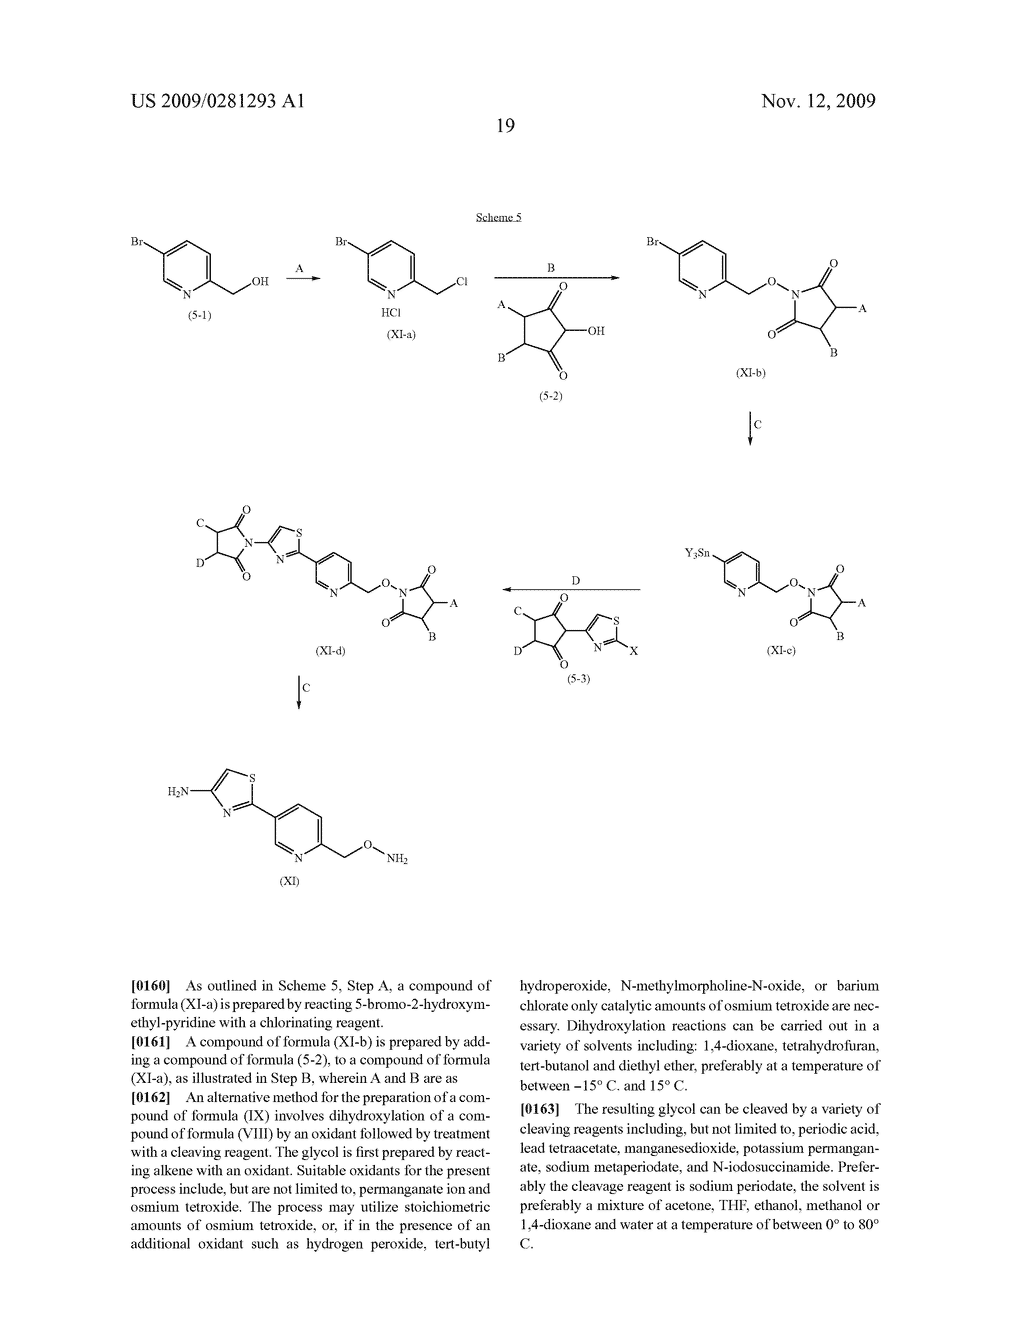 PROCESSES FOR THE PREPARATION OF 2 FLUORO 6-11 BICYCLIC ERYTHROMYCIN DERIVATIVES - diagram, schematic, and image 20